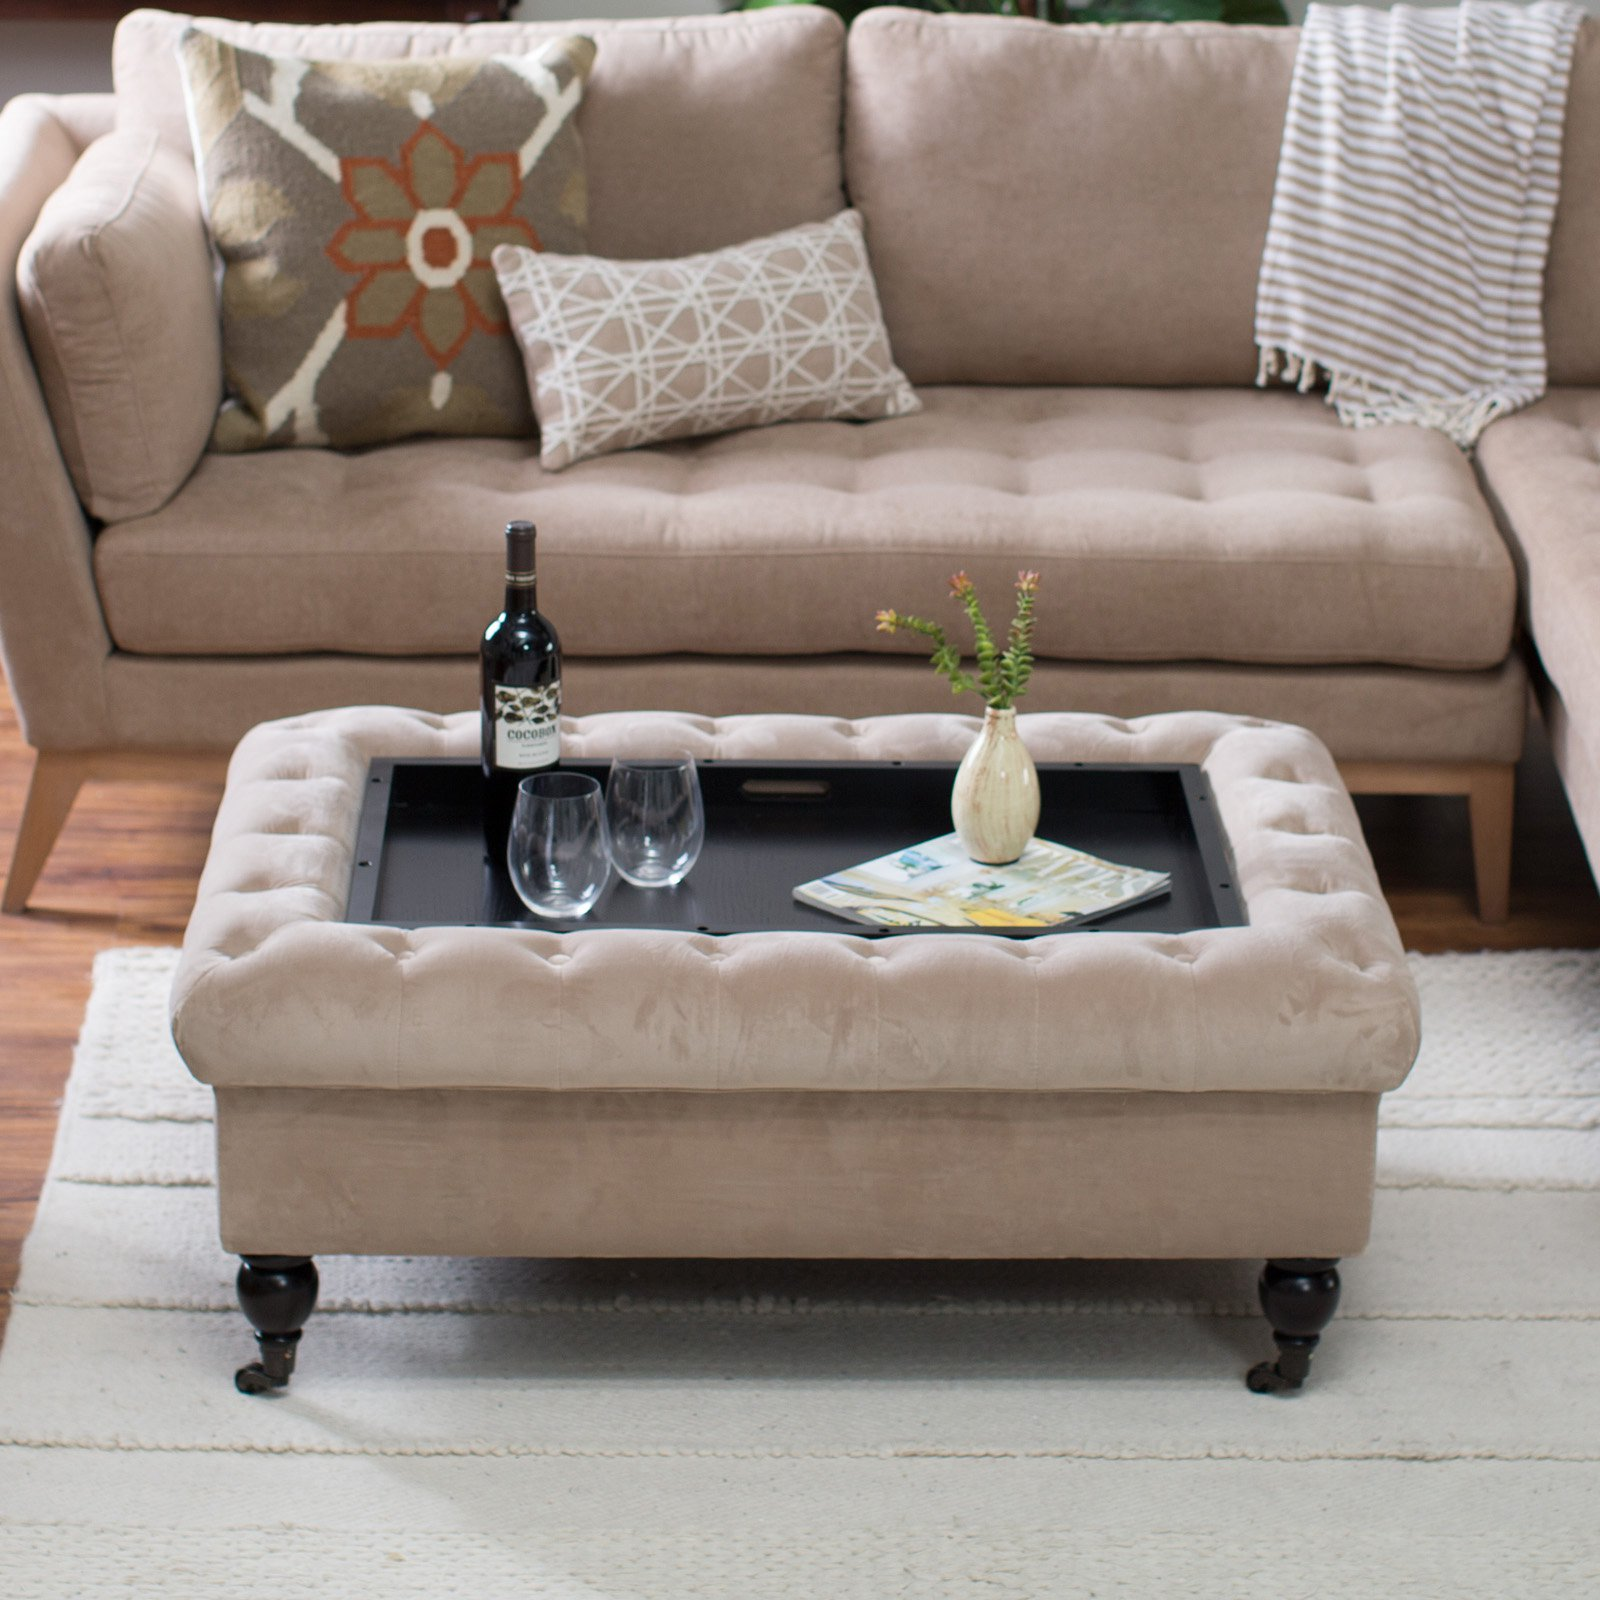 - Belham Living Sandrine Tufted Storage Ottoman With Tray Table